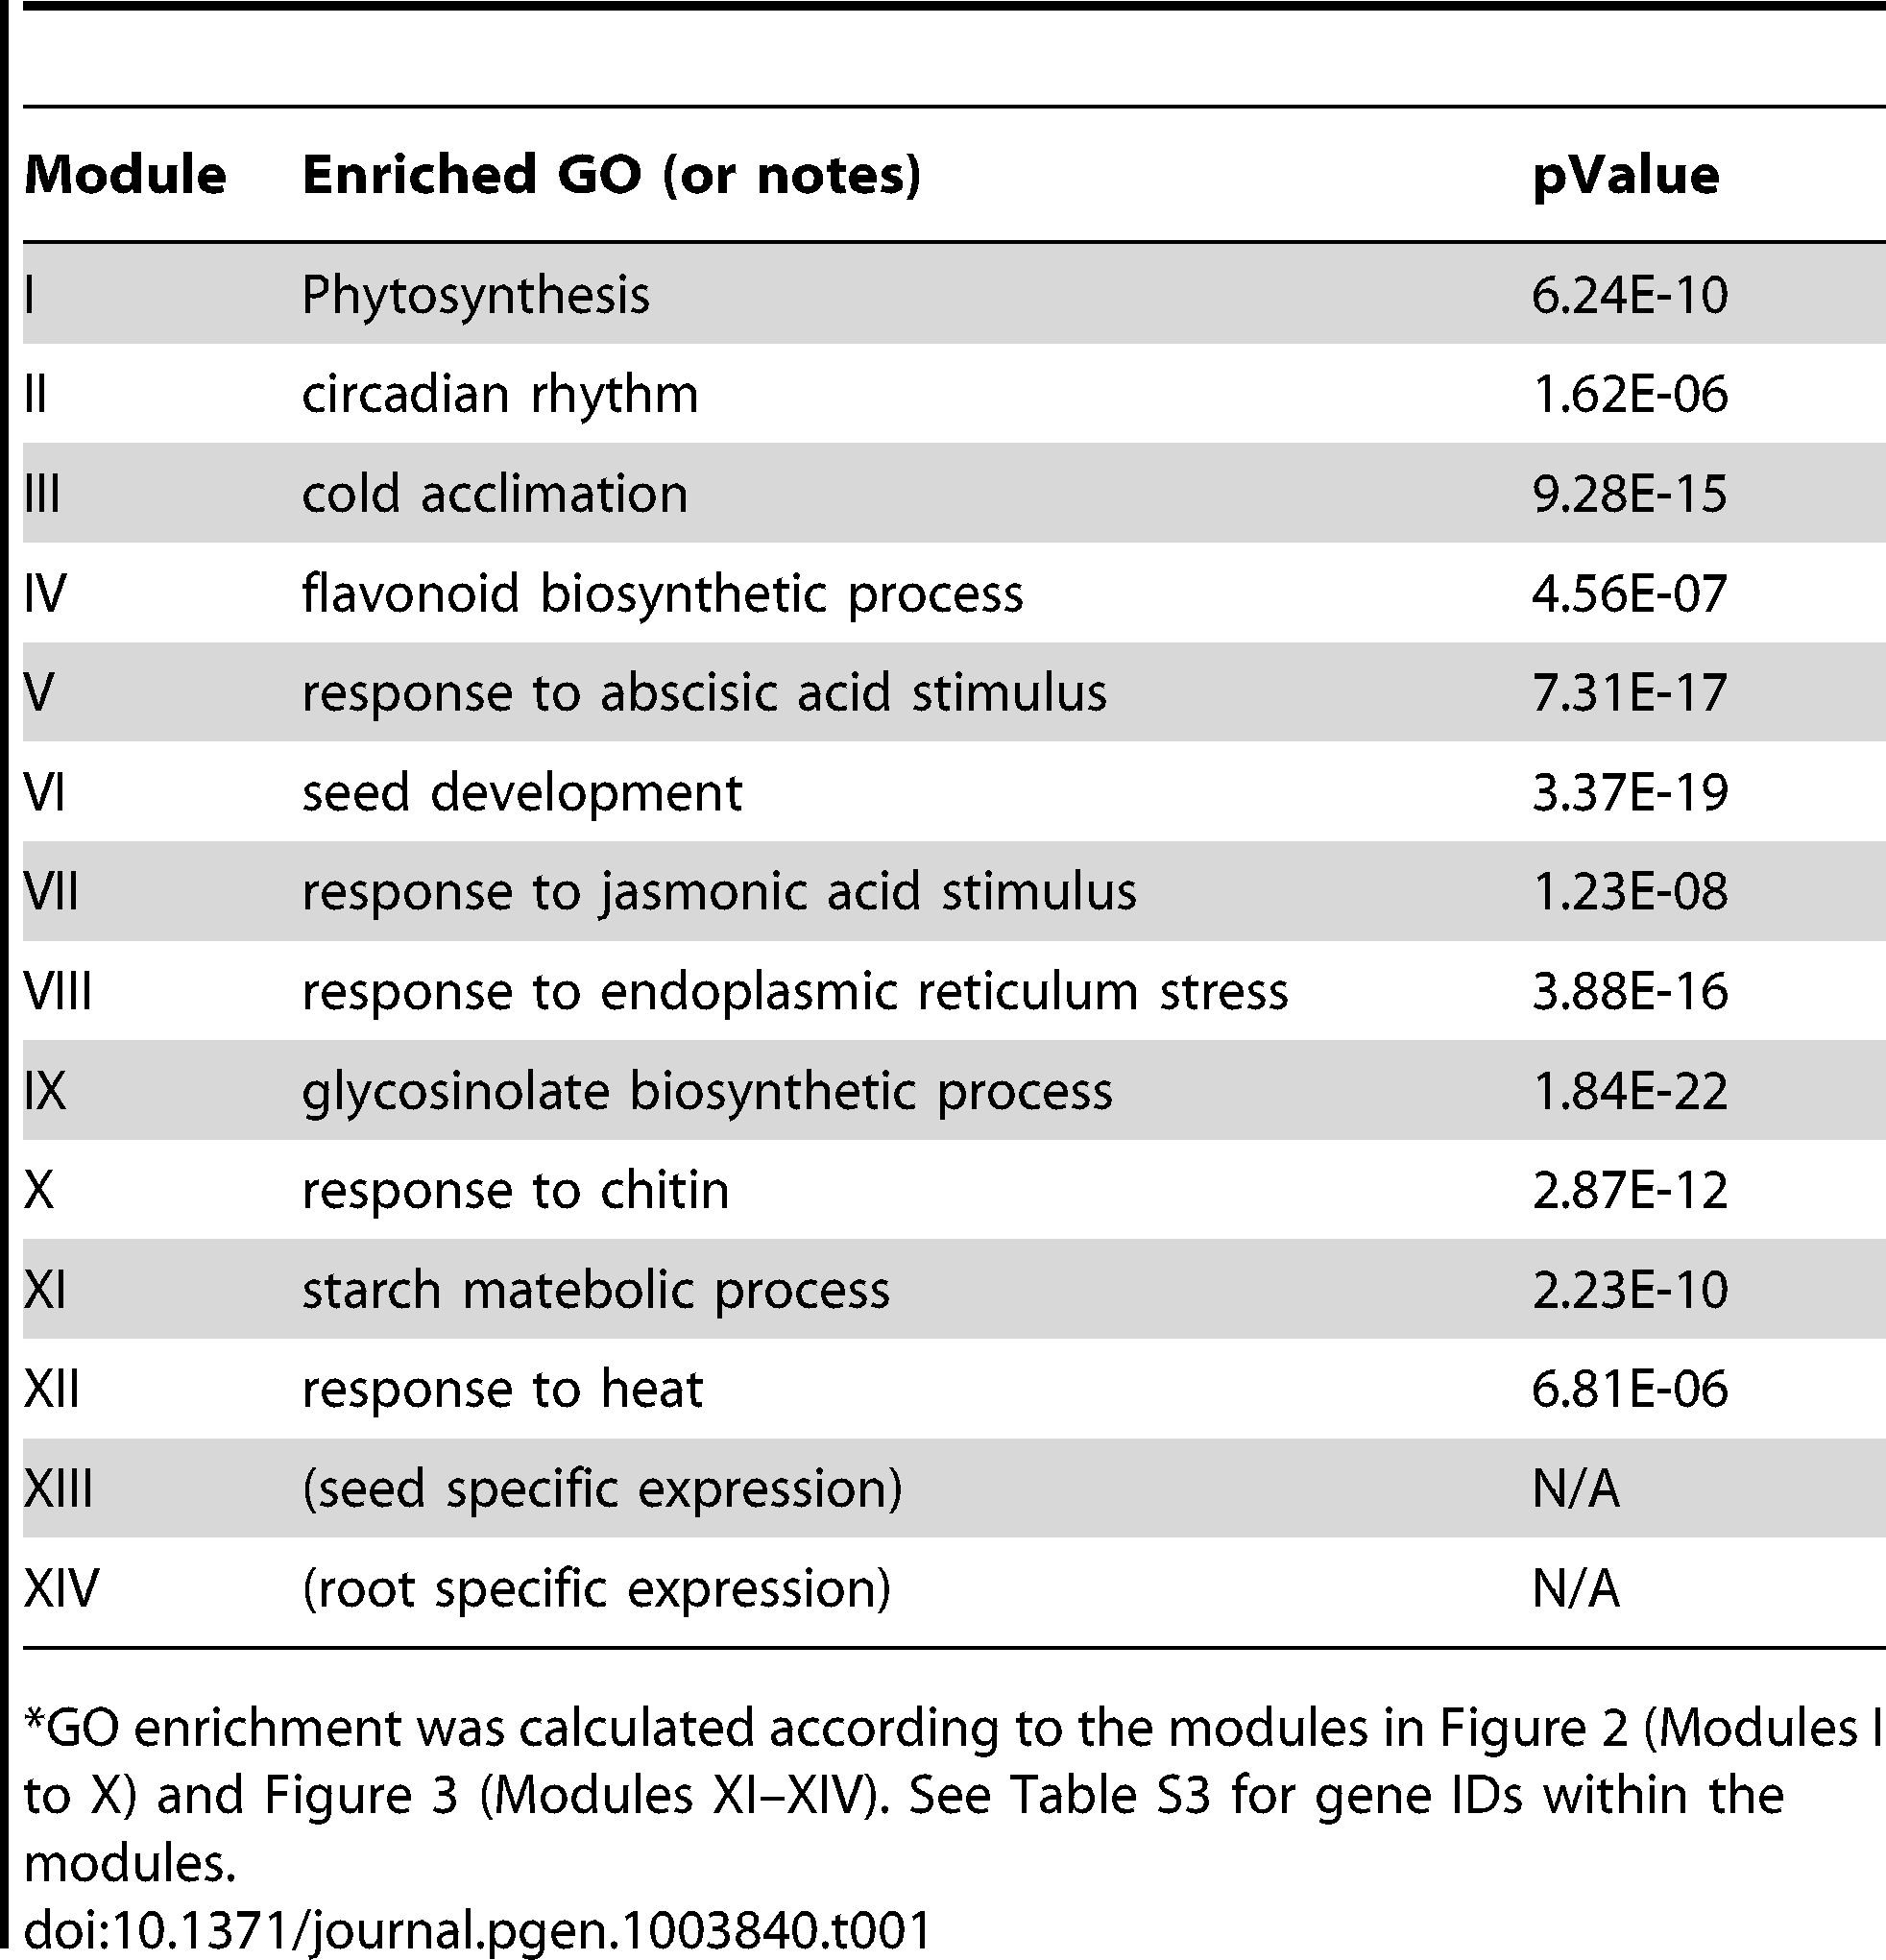 """GO enrichment of co-expression modules identified in the G-Box sub-network<em class=""""ref"""">*</em>."""